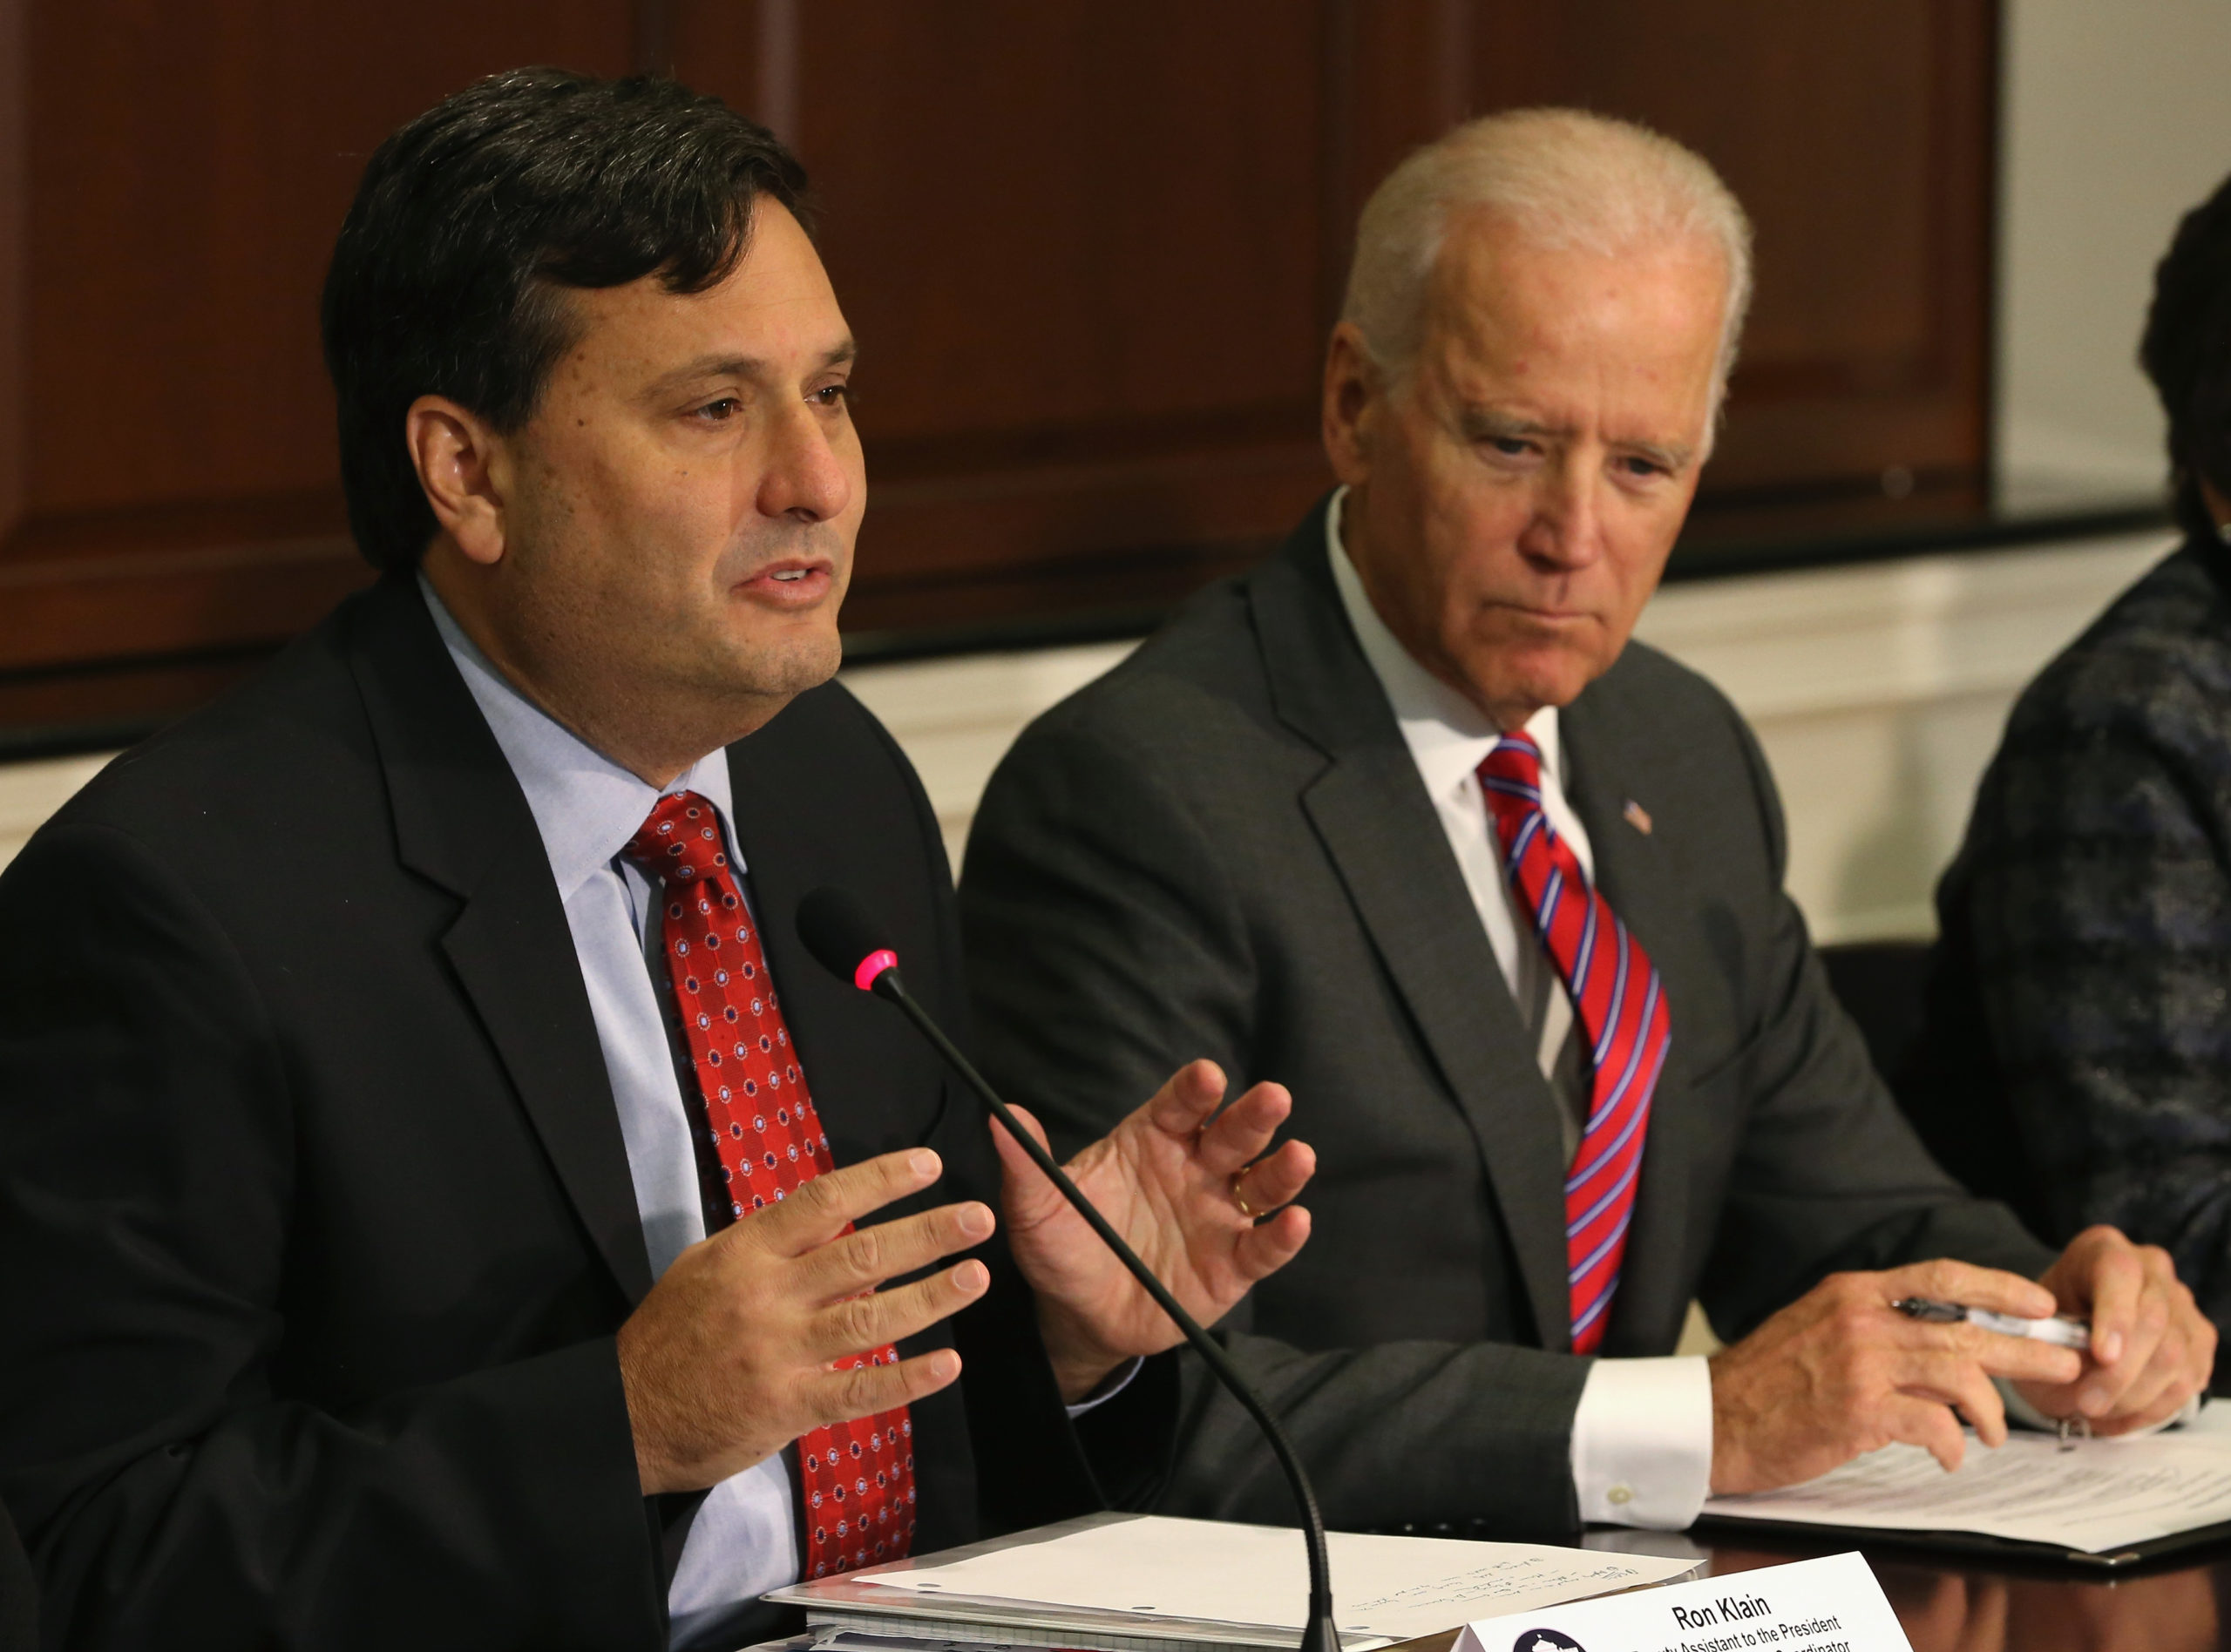 WASHINGTON, DC - NOVEMBER 13: Ebola Response Coordinator Ron Klain (L), joined by U.S. Vice President Joseph Biden (R), speaks during a meeting regarding Ebola at the Eisenhower Executive office building November 13, 2014 in Washington, D.C. Vice President Biden met with leaders of faith, humanitarian, and non-governmental organizations that are responding to the Ebola crisis in West Africa. (Photo by Mark Wilson/Getty Images)